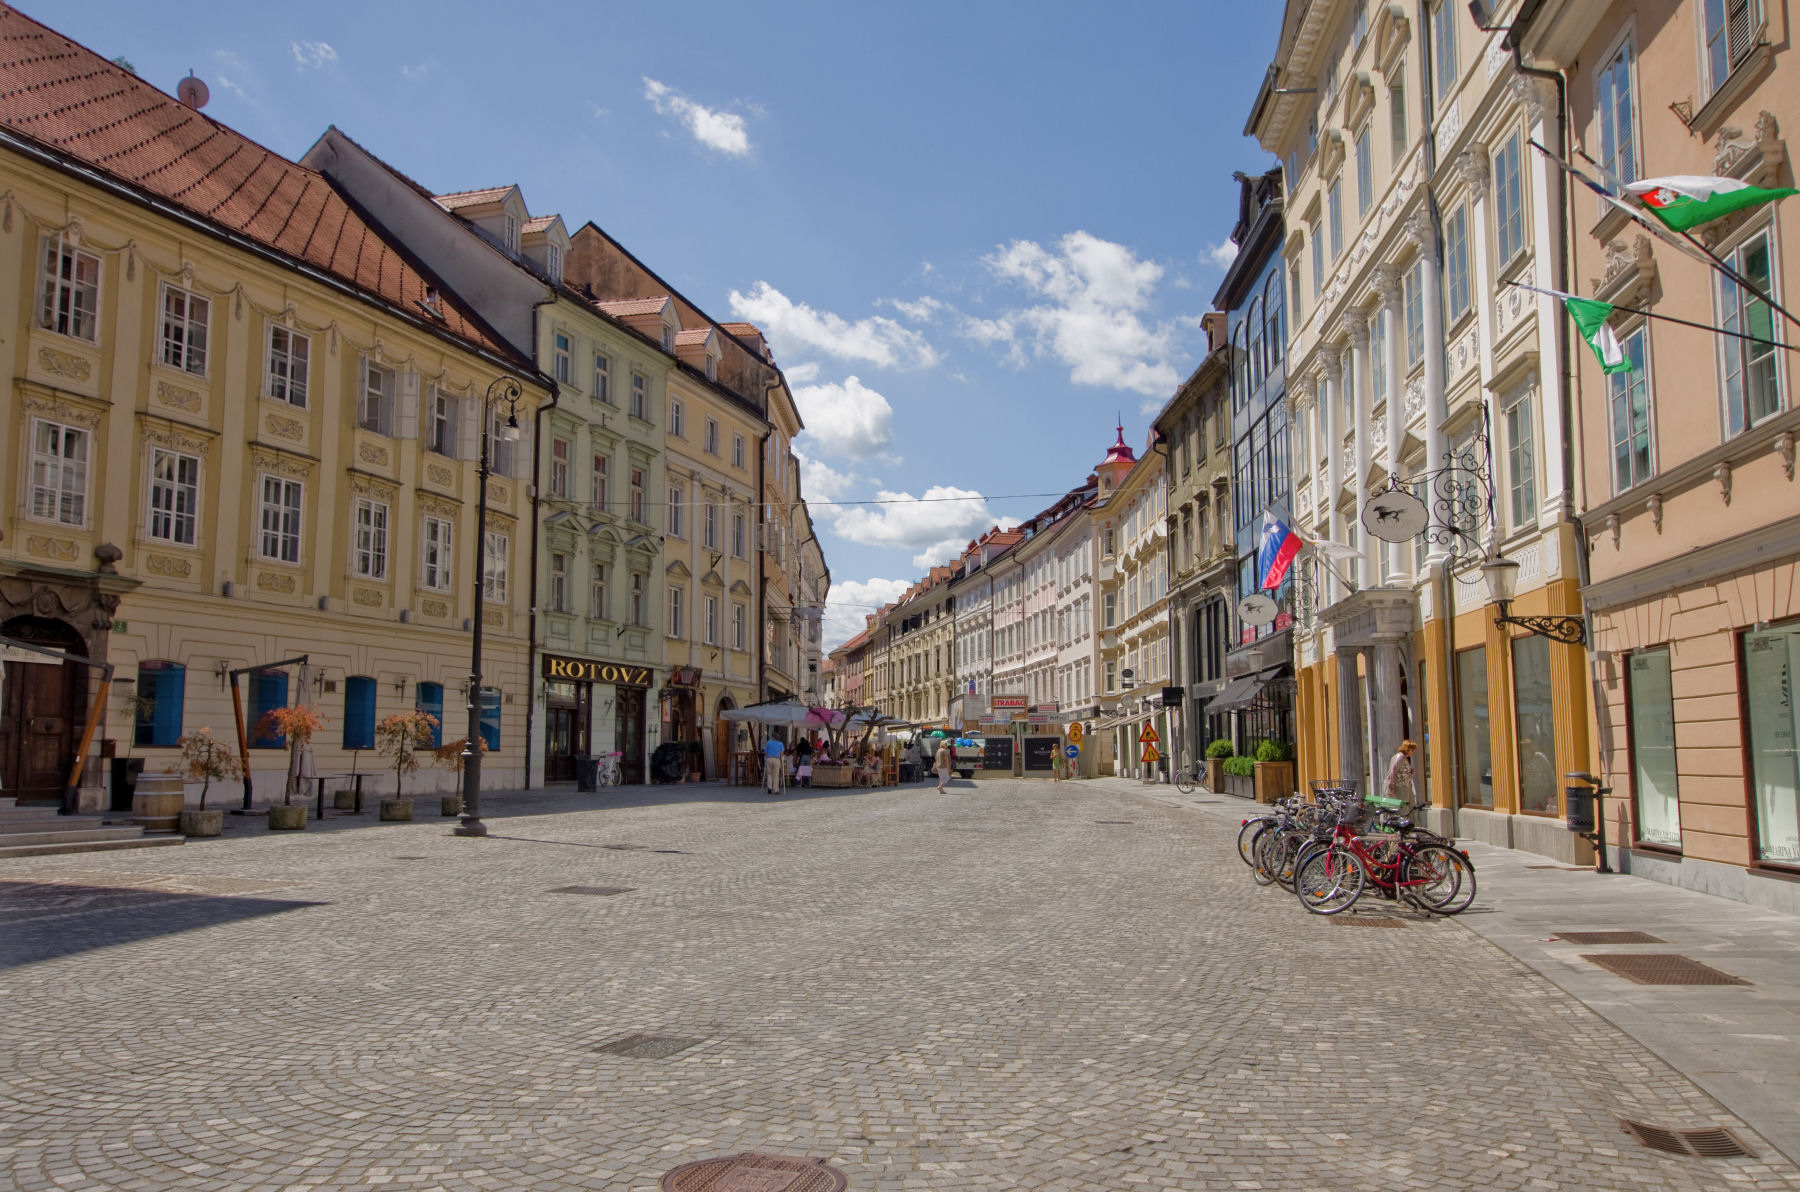 Ljubljana is a lovely city with a beautiful Old Town, restaurants, cafes and shops